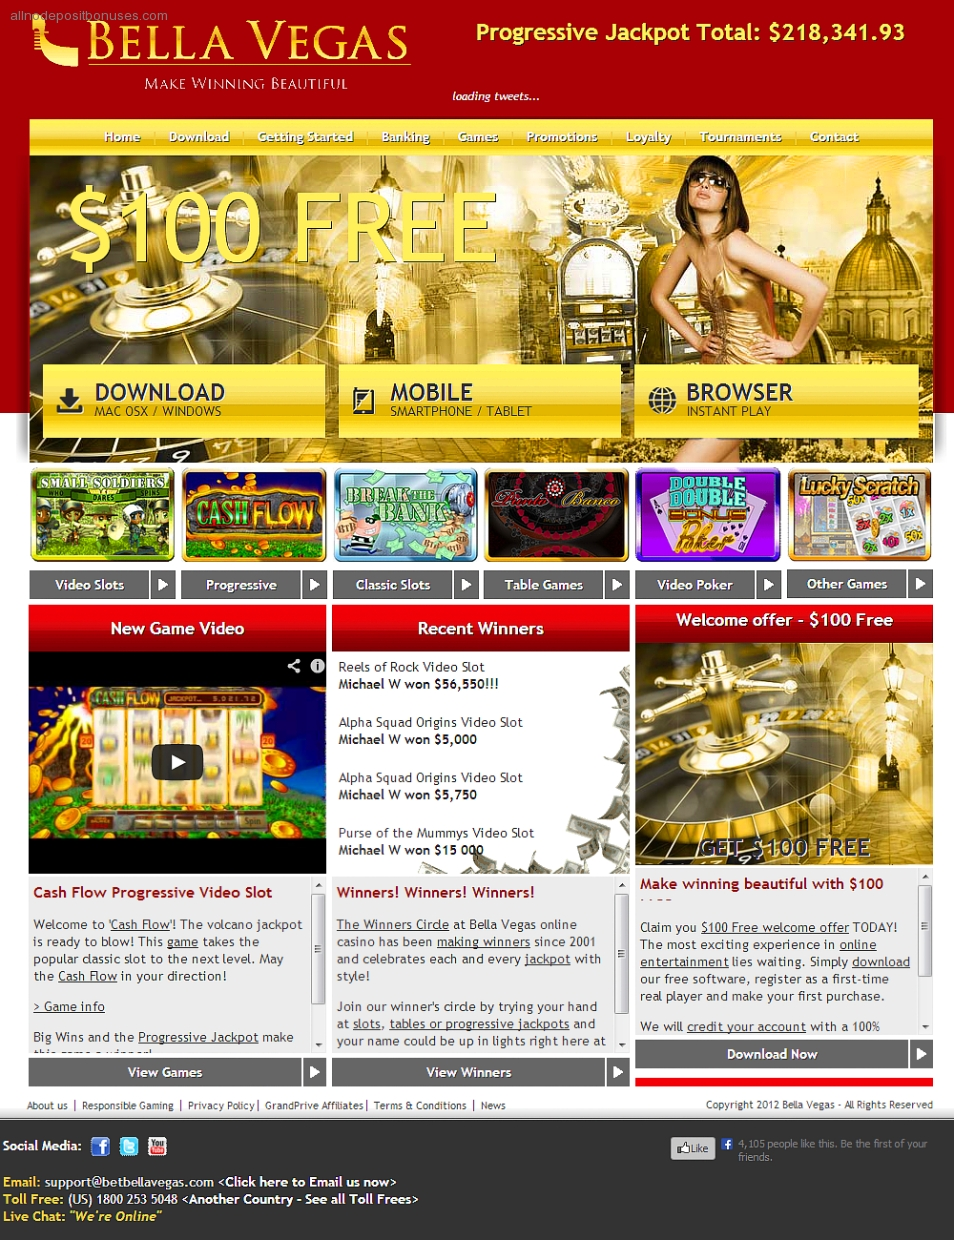 Vegas strip online casino no deposit bonus codes